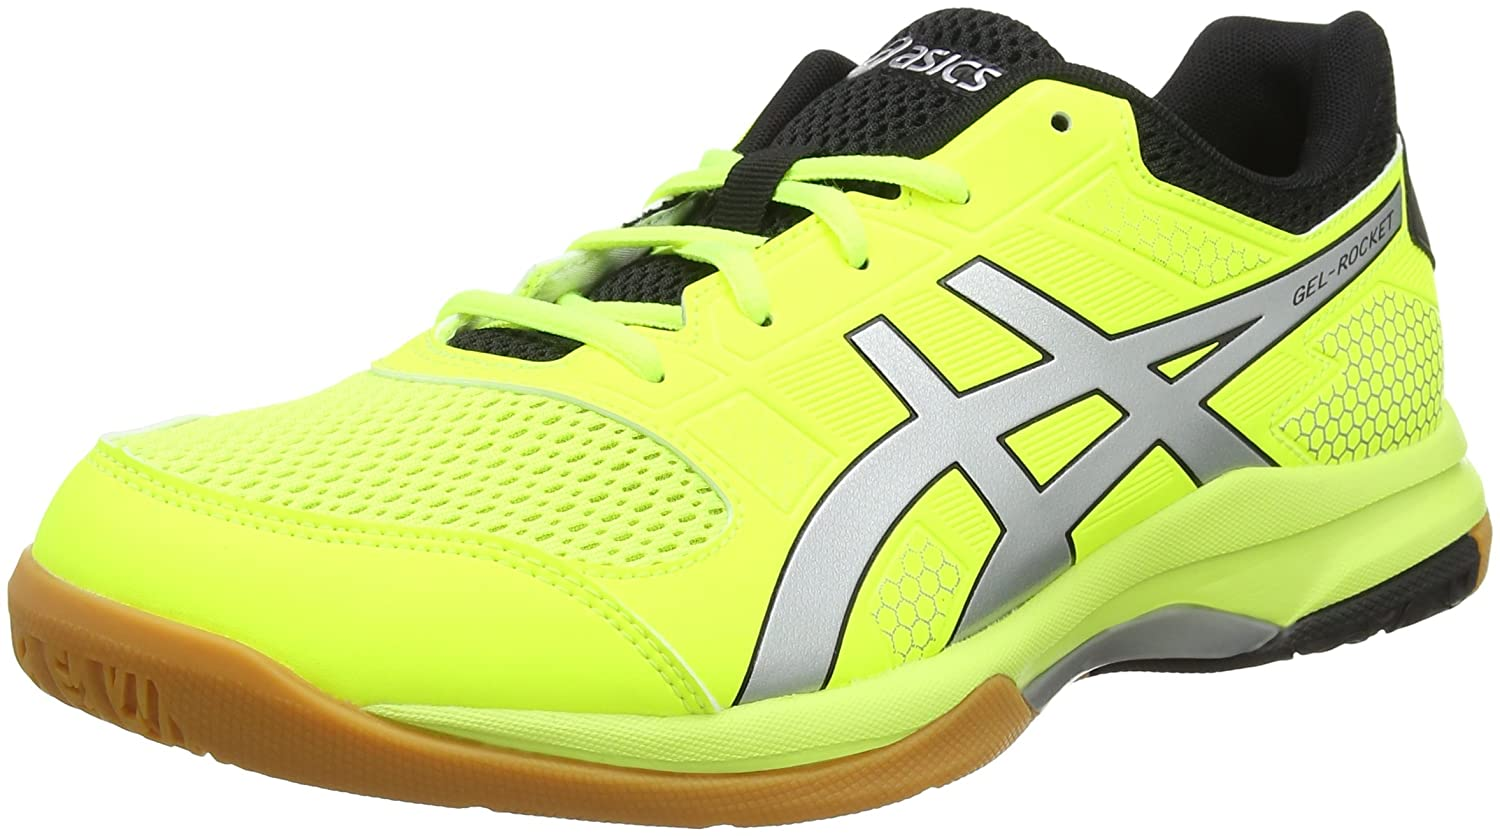 Asics Men's Gel-Rocket 8 Multisport Indoor Shoes, Yellow (Flash Yellow/Silver 750),9 UK/44 EU B706Y